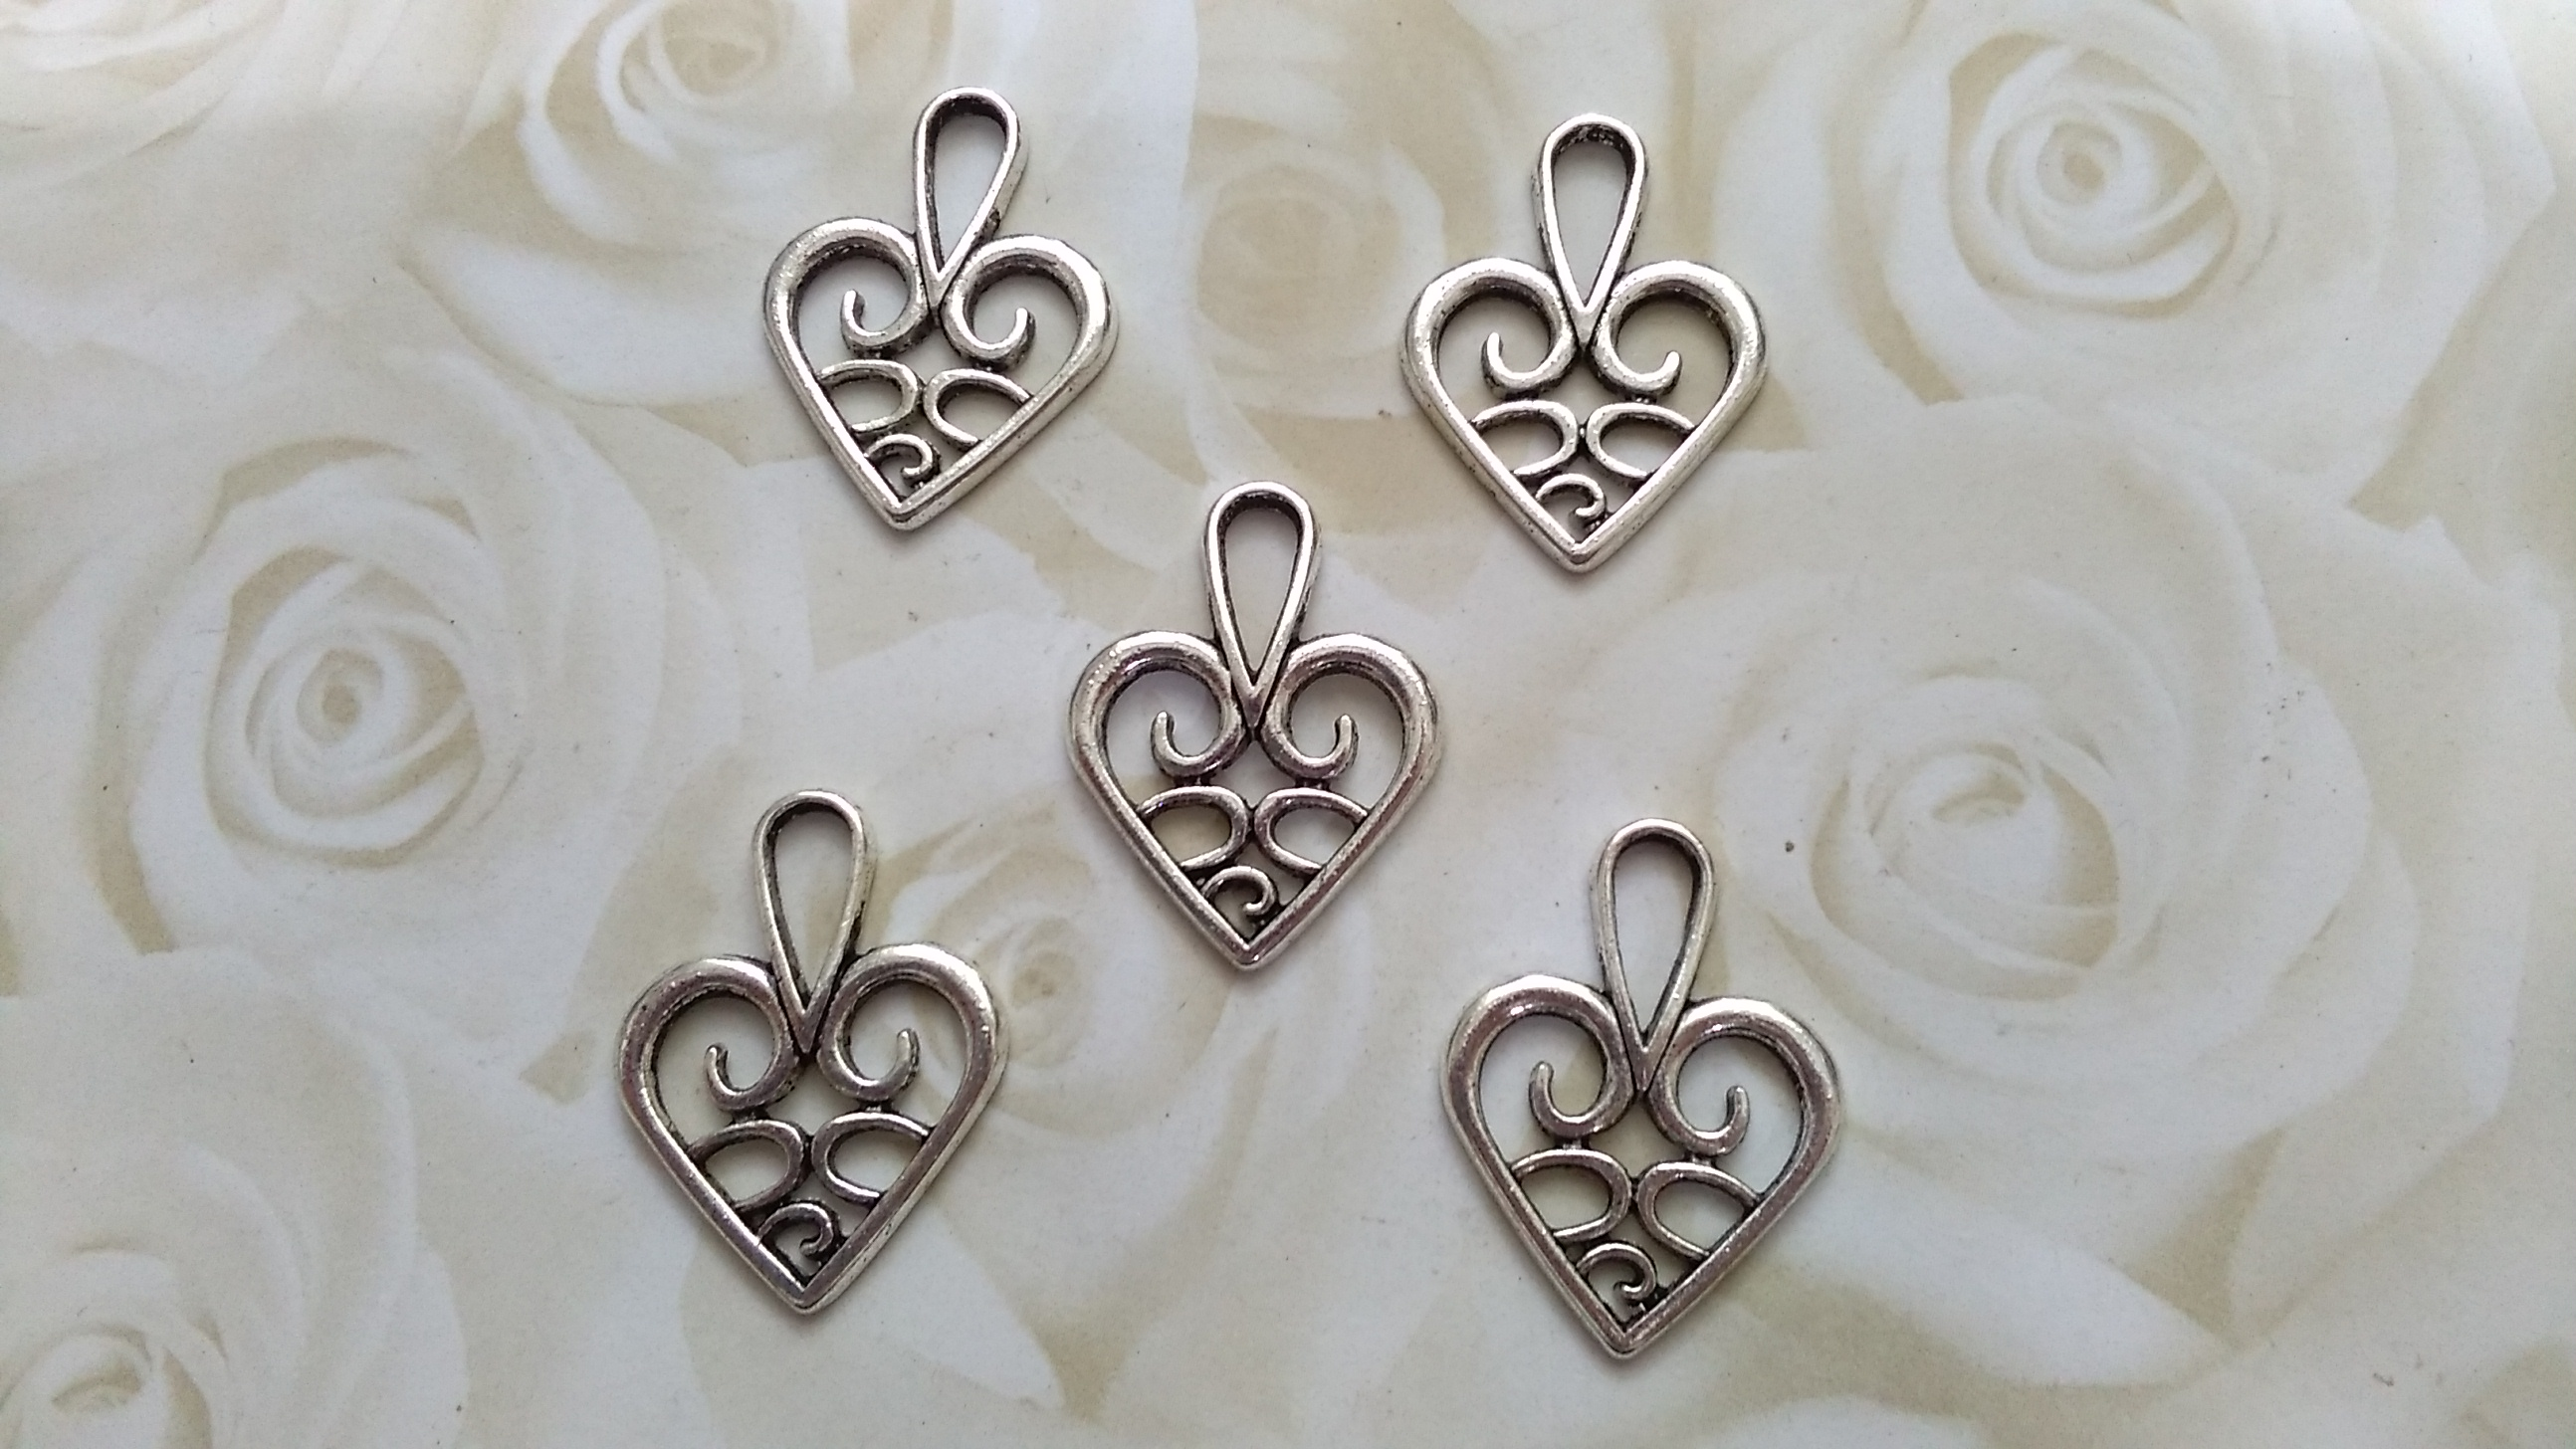 Tibetan Silver Ornate Heart 20x25mm Charms